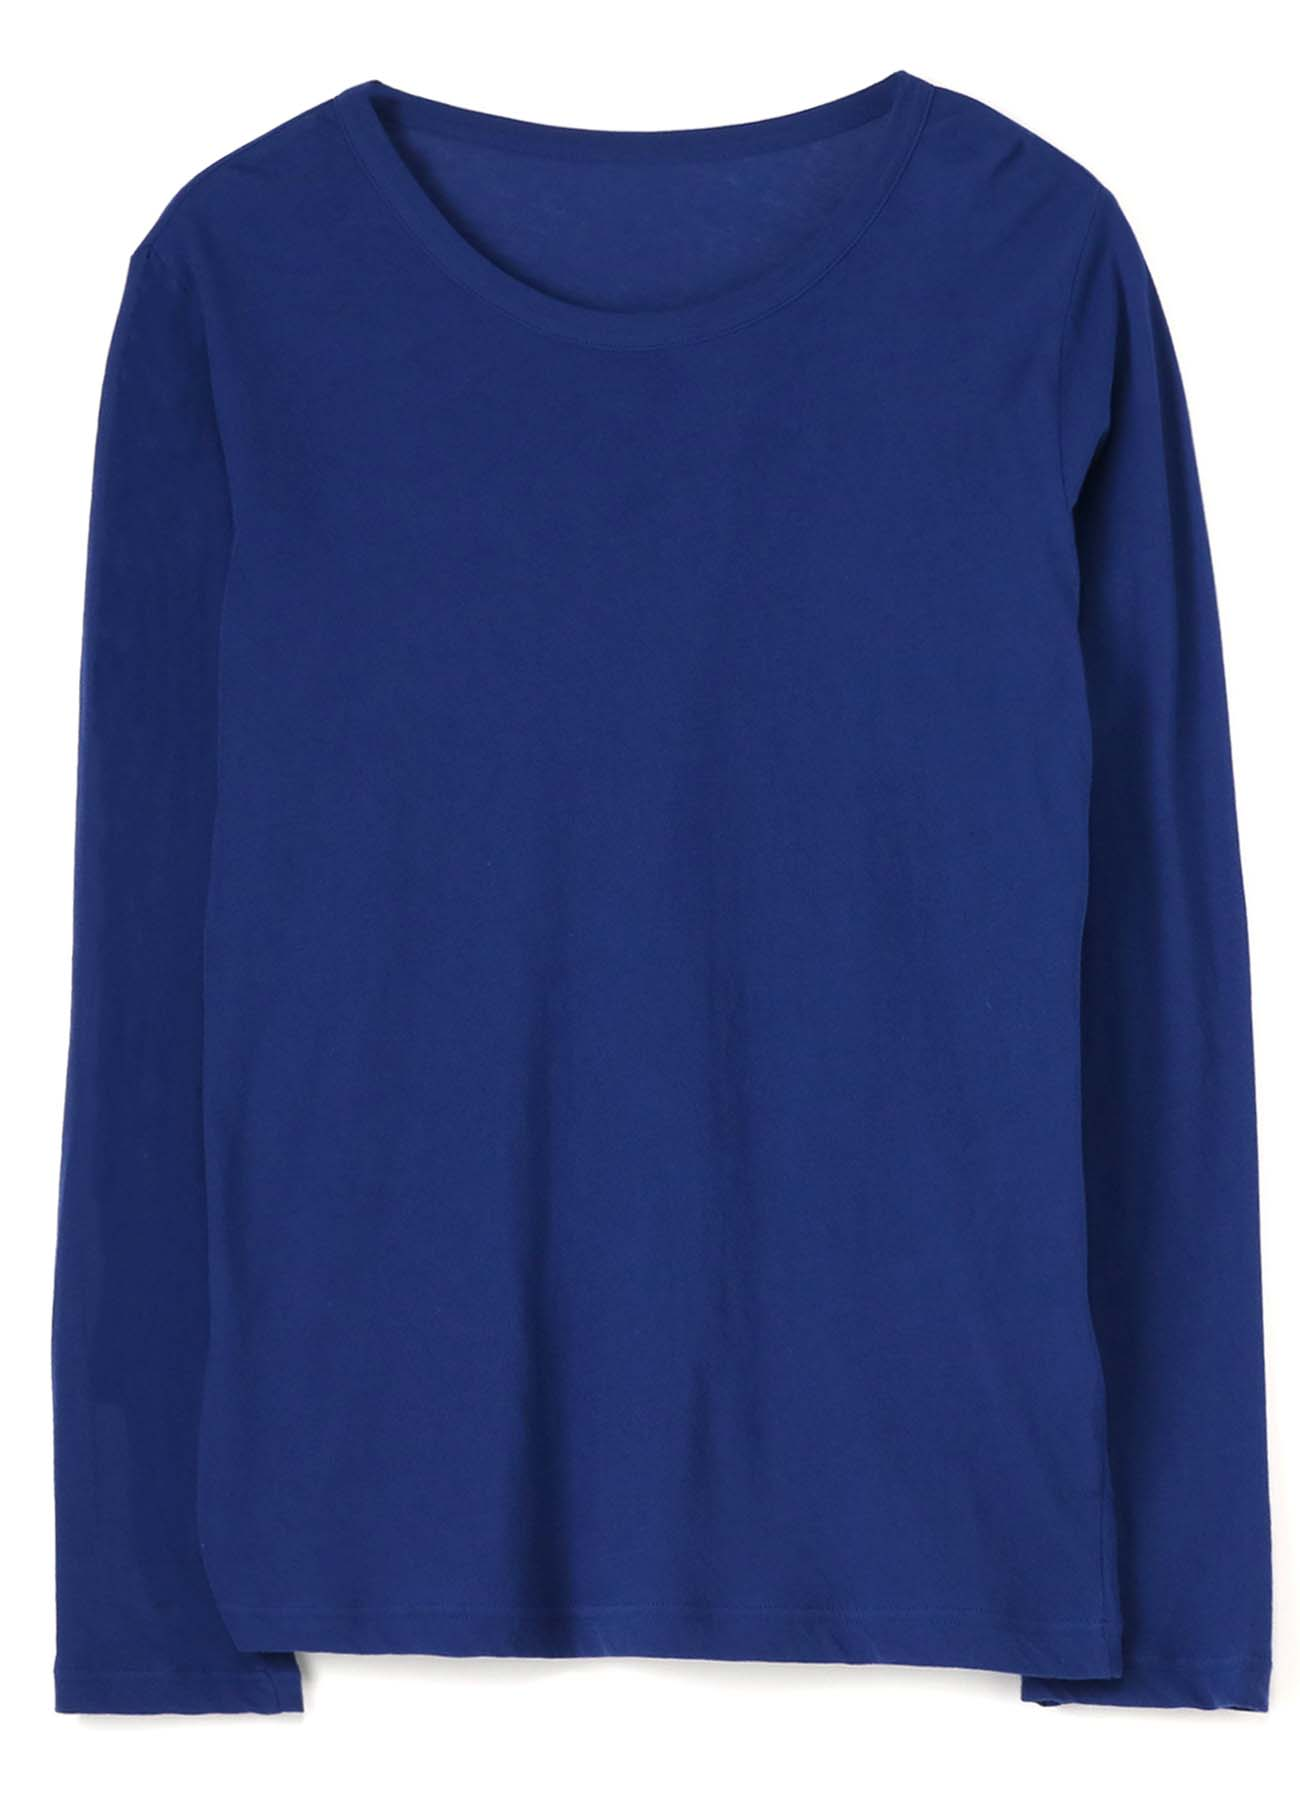 60/- STRONG TWISTED PS LONG SLEEVE T